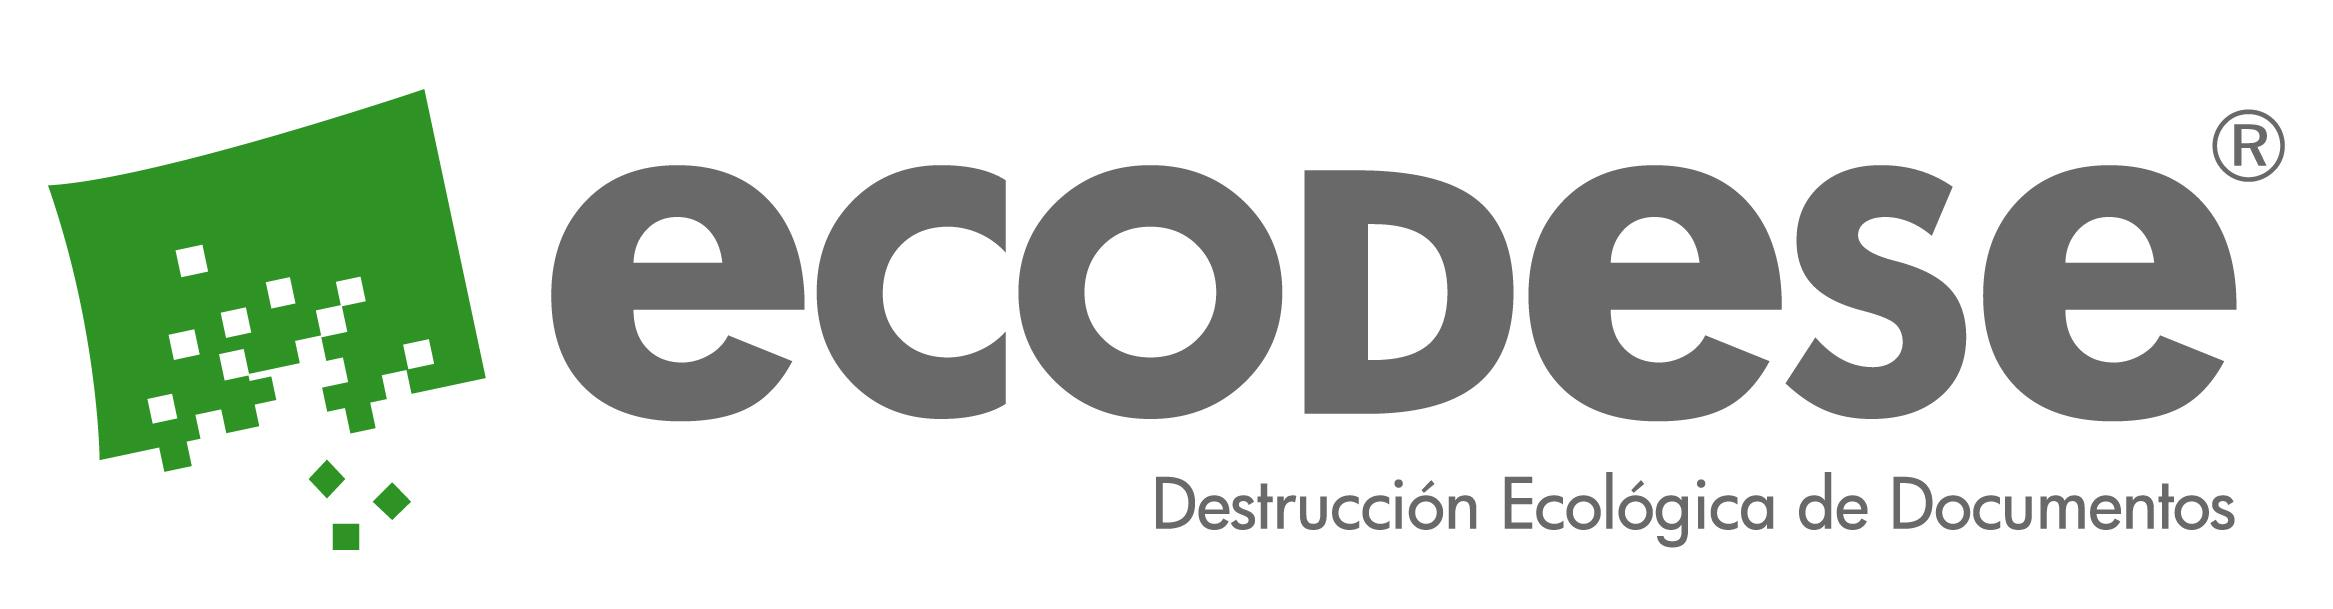 Destruccion de Documentos